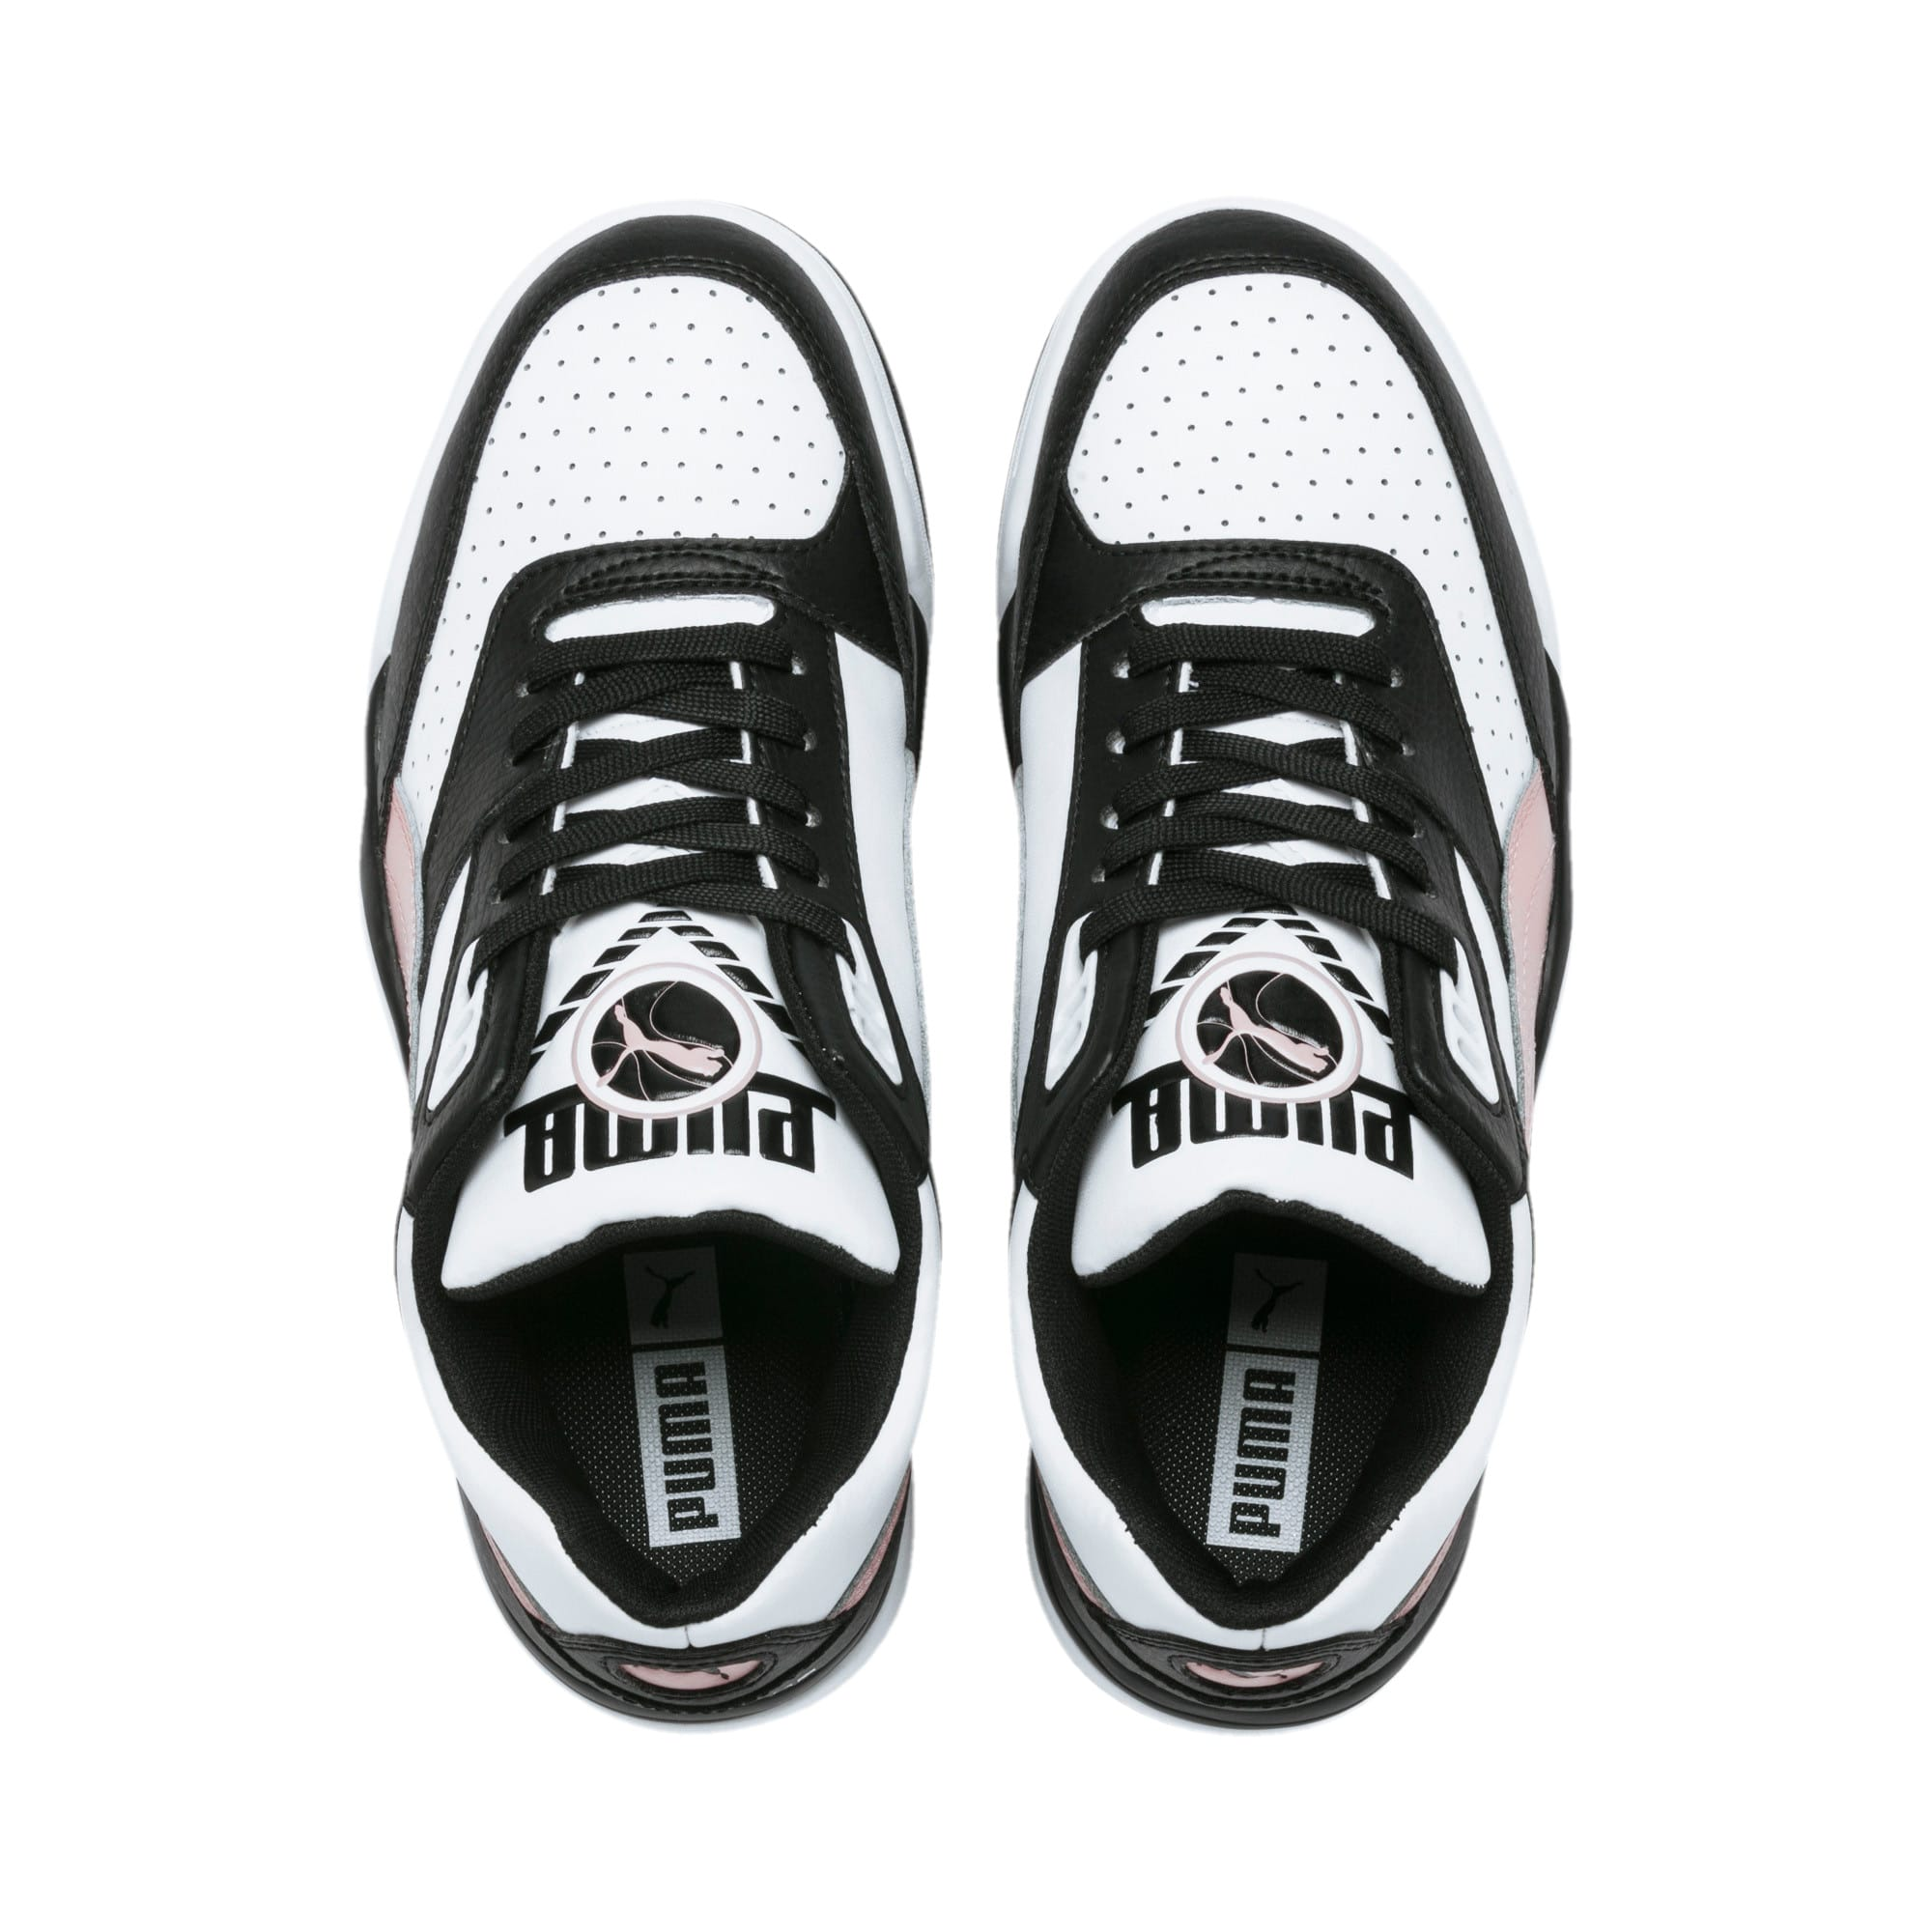 Thumbnail 7 of Basket Palace Guard Colour Block pour femme, Puma Black-Puma White, medium